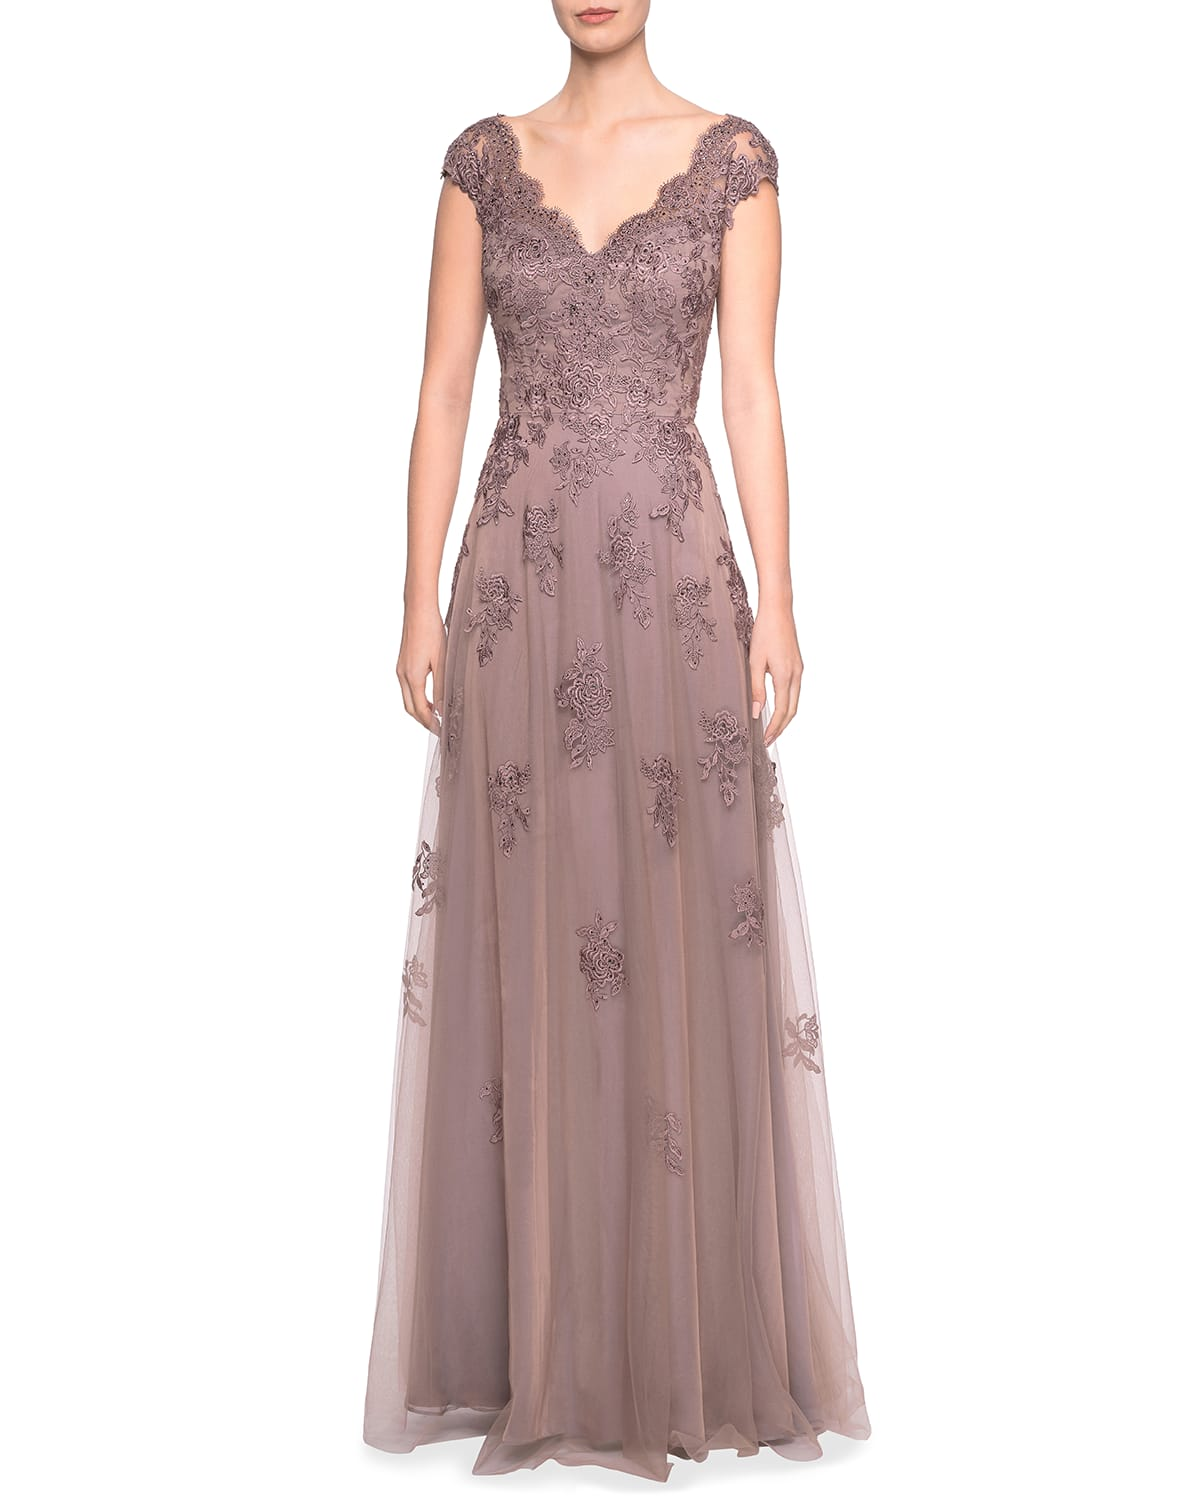 Embellished Floral Lace Cap-Sleeve Tulle A-Line Gown